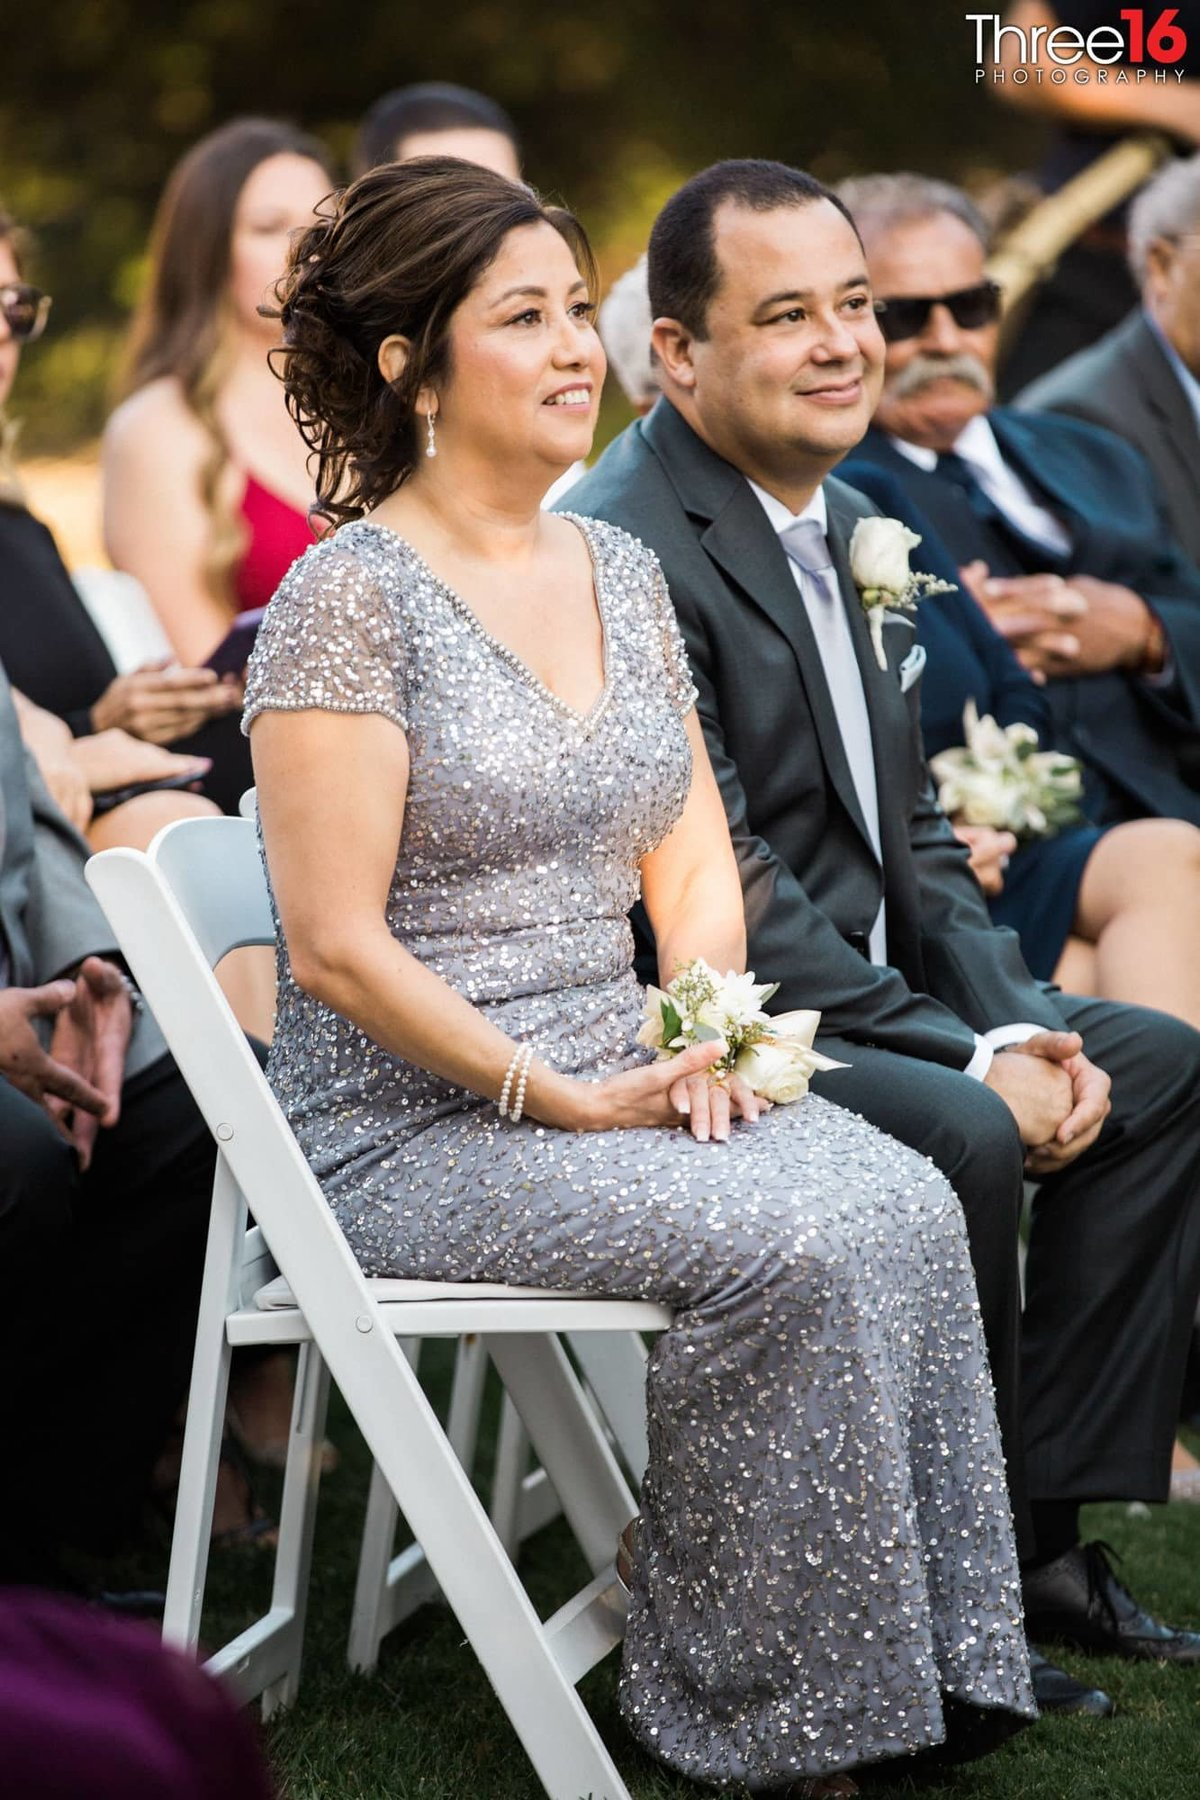 Parents of the Bride watch their daughter get married